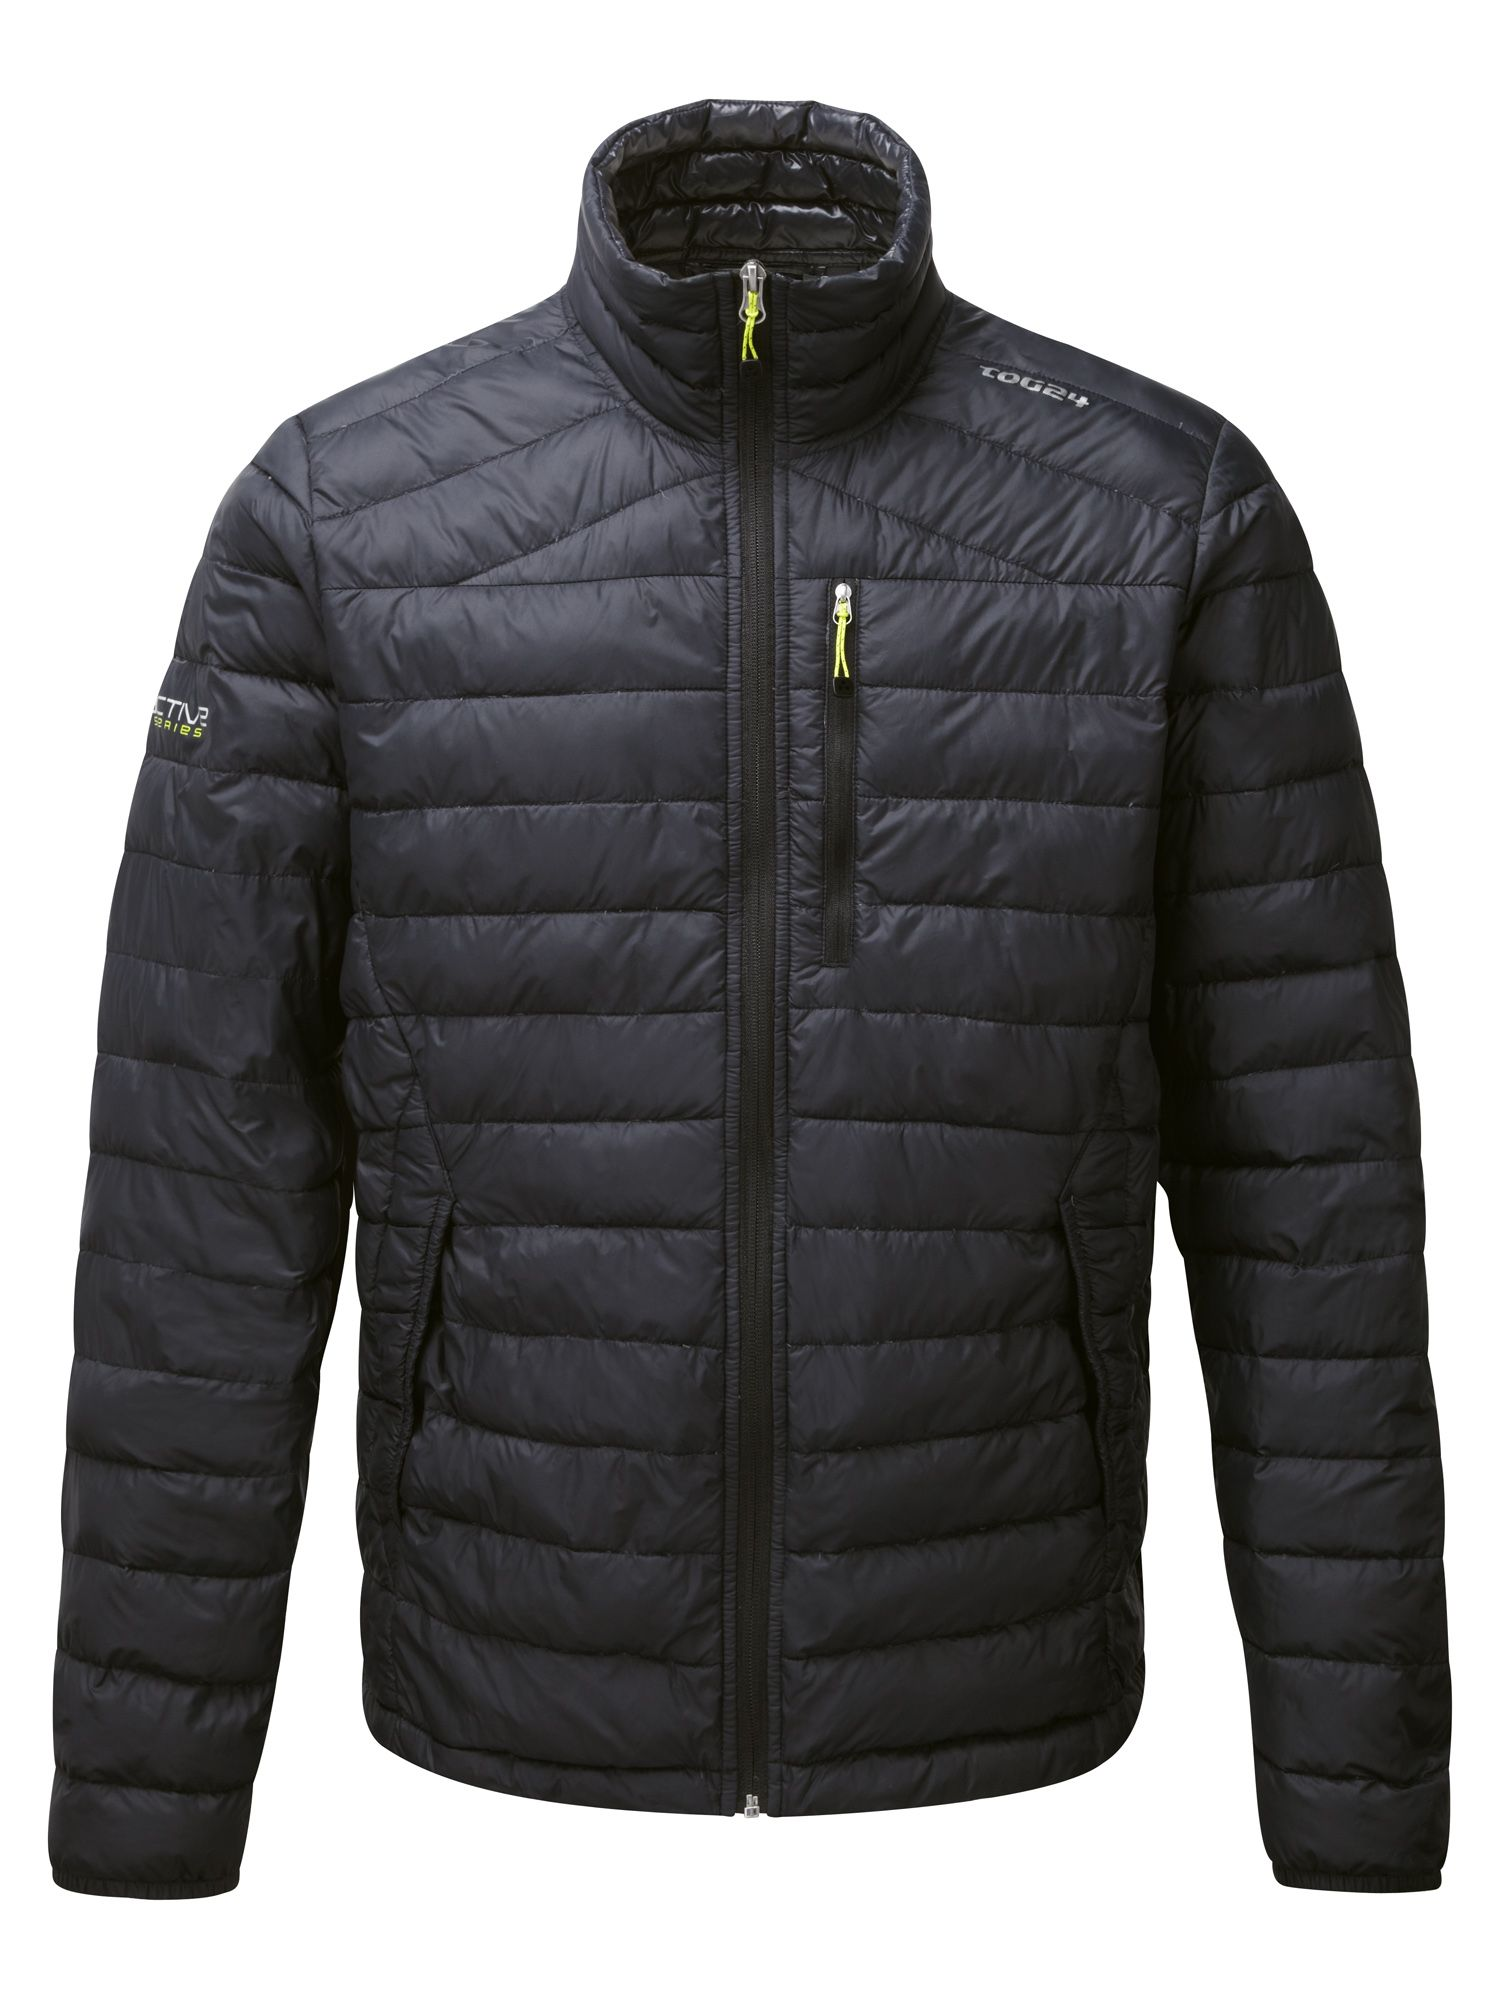 Buy the latest Jackets & Coats For Men on sale at cheap prices, and check out our daily updated new arrival best mens winter Jackets & winter Coats at evildownloadersuper74k.ga